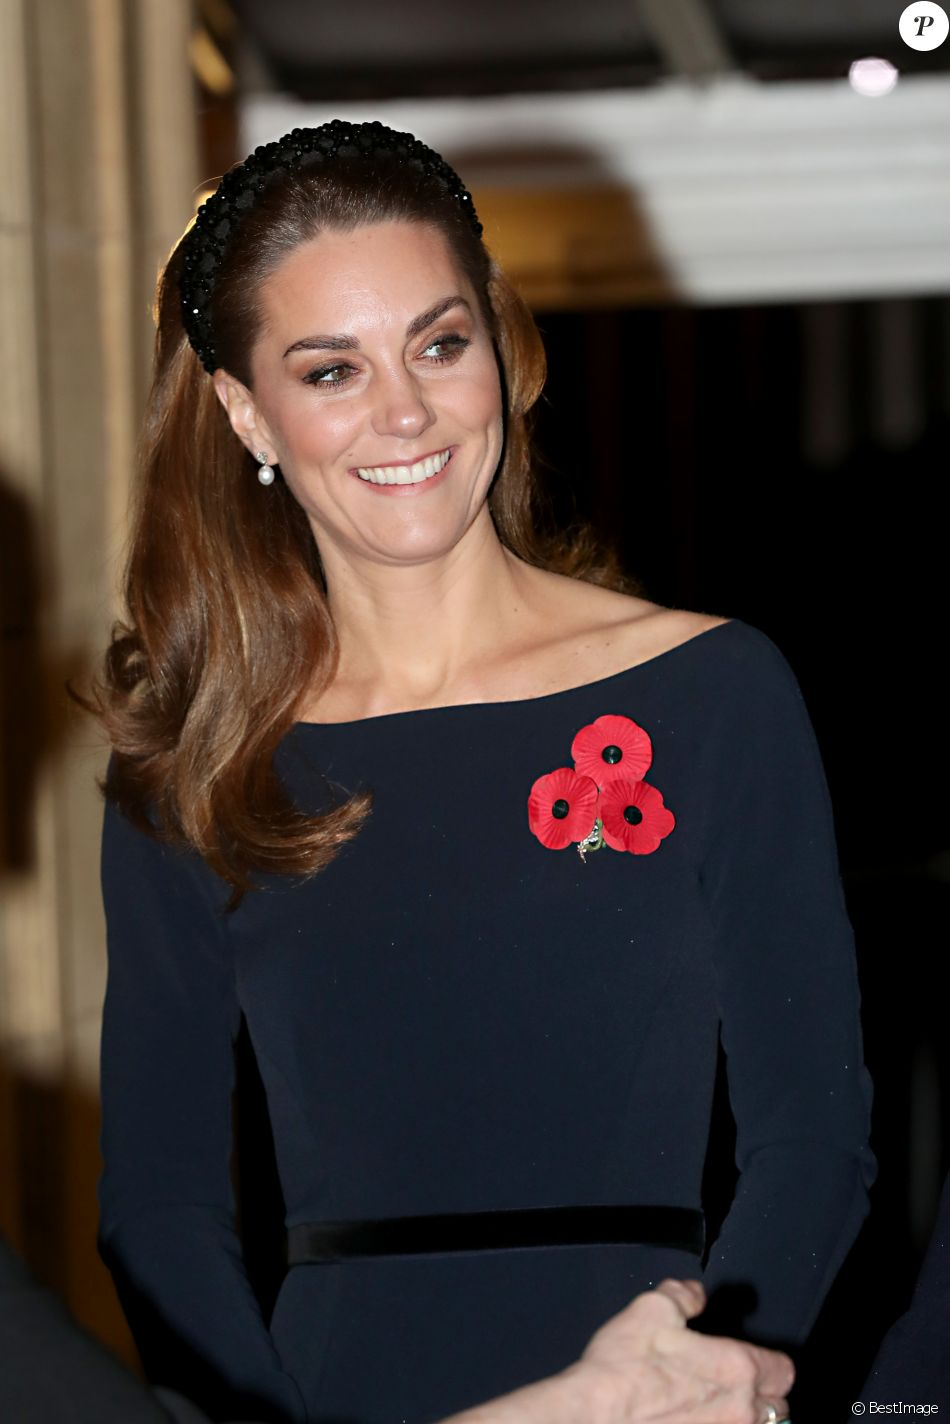 Kate Middleton, duchesse de Cambridge - La famille royale assiste au Royal British Legion Festival of Remembrance au Royal Albert Hall à Kensington, Londres, le 9 novembre 2019.